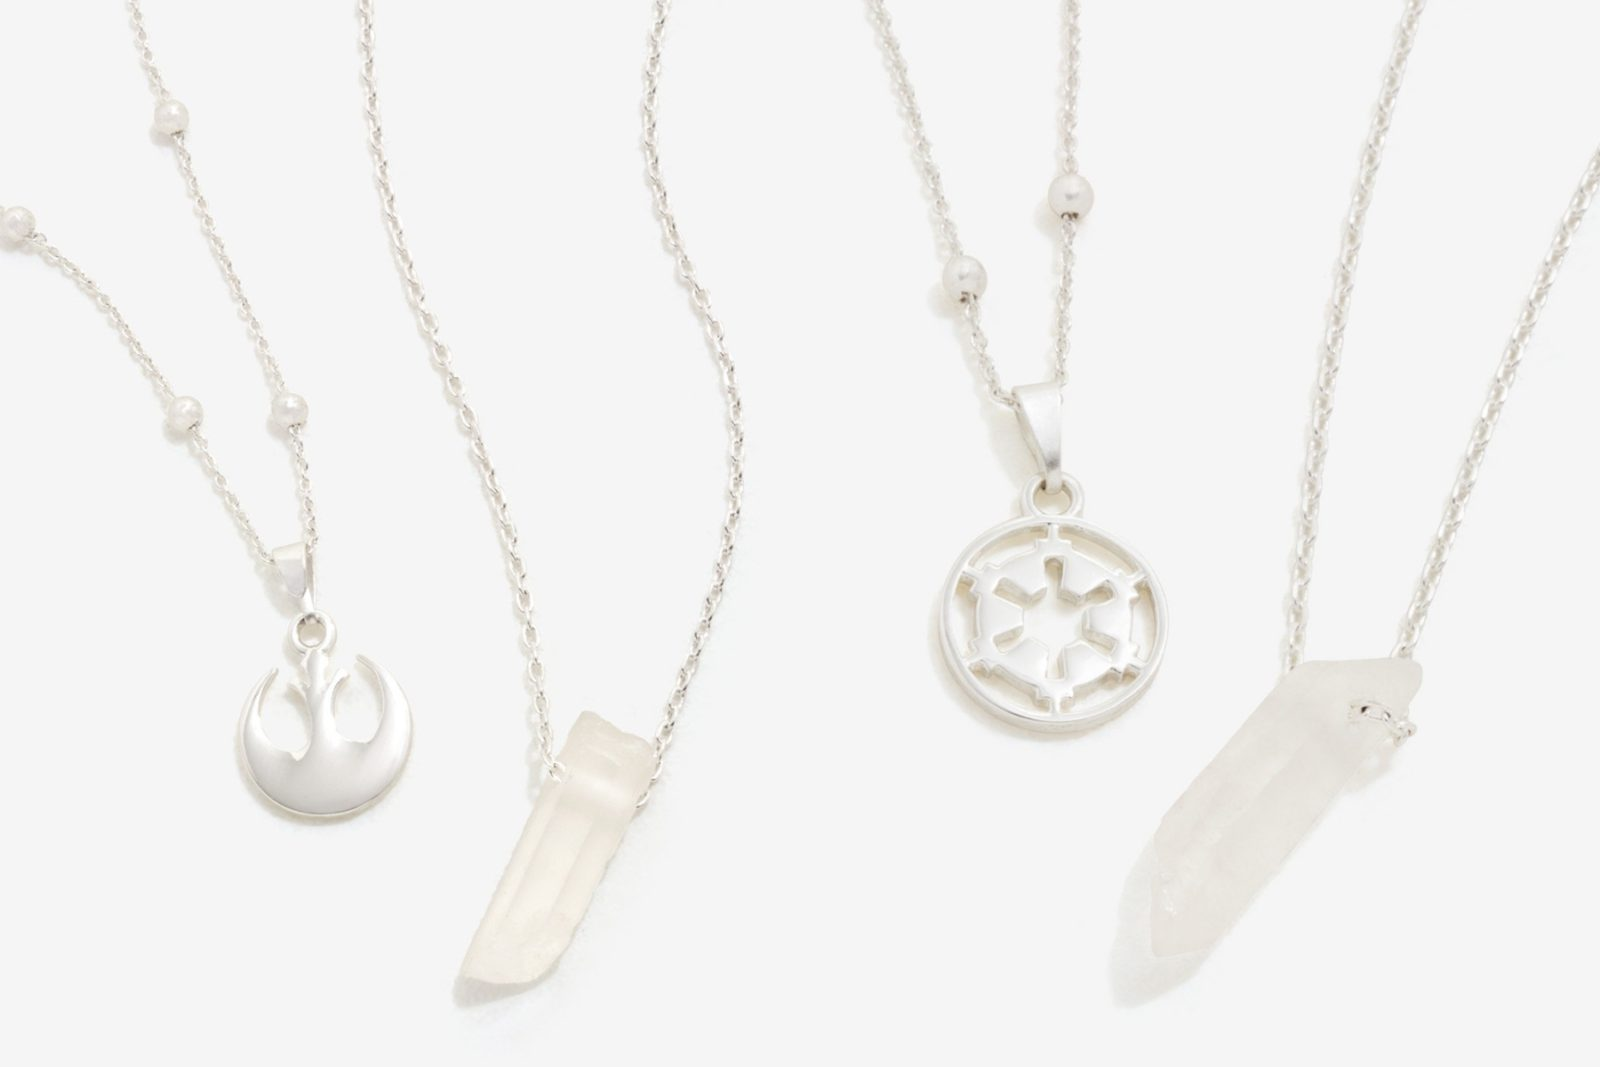 Star Wars Quartz Crystal Necklace Sets